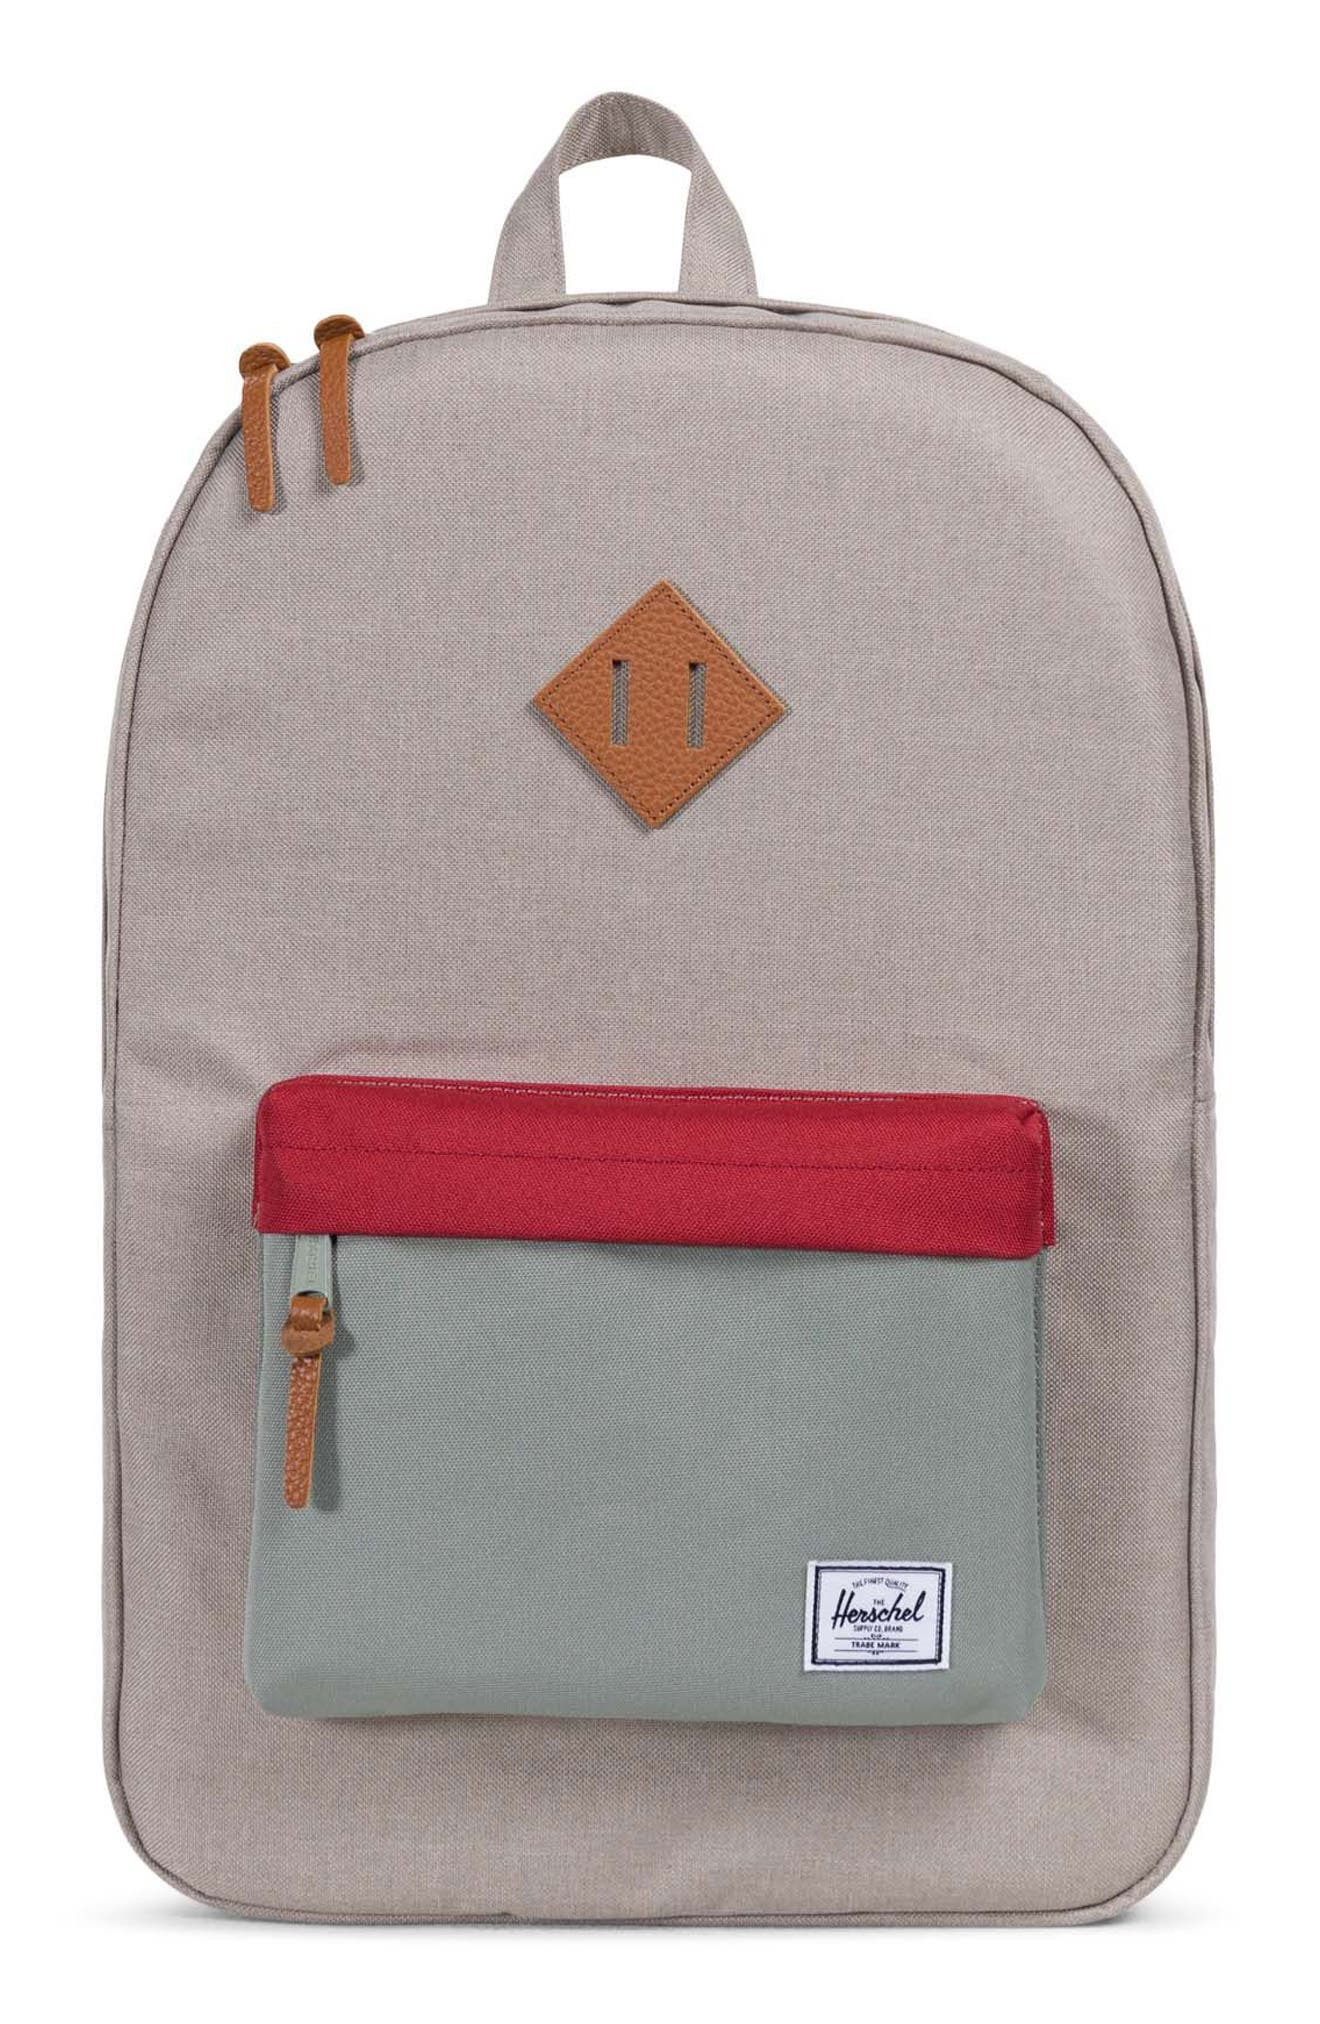 Heritage Backpack,                             Main thumbnail 1, color,                             200